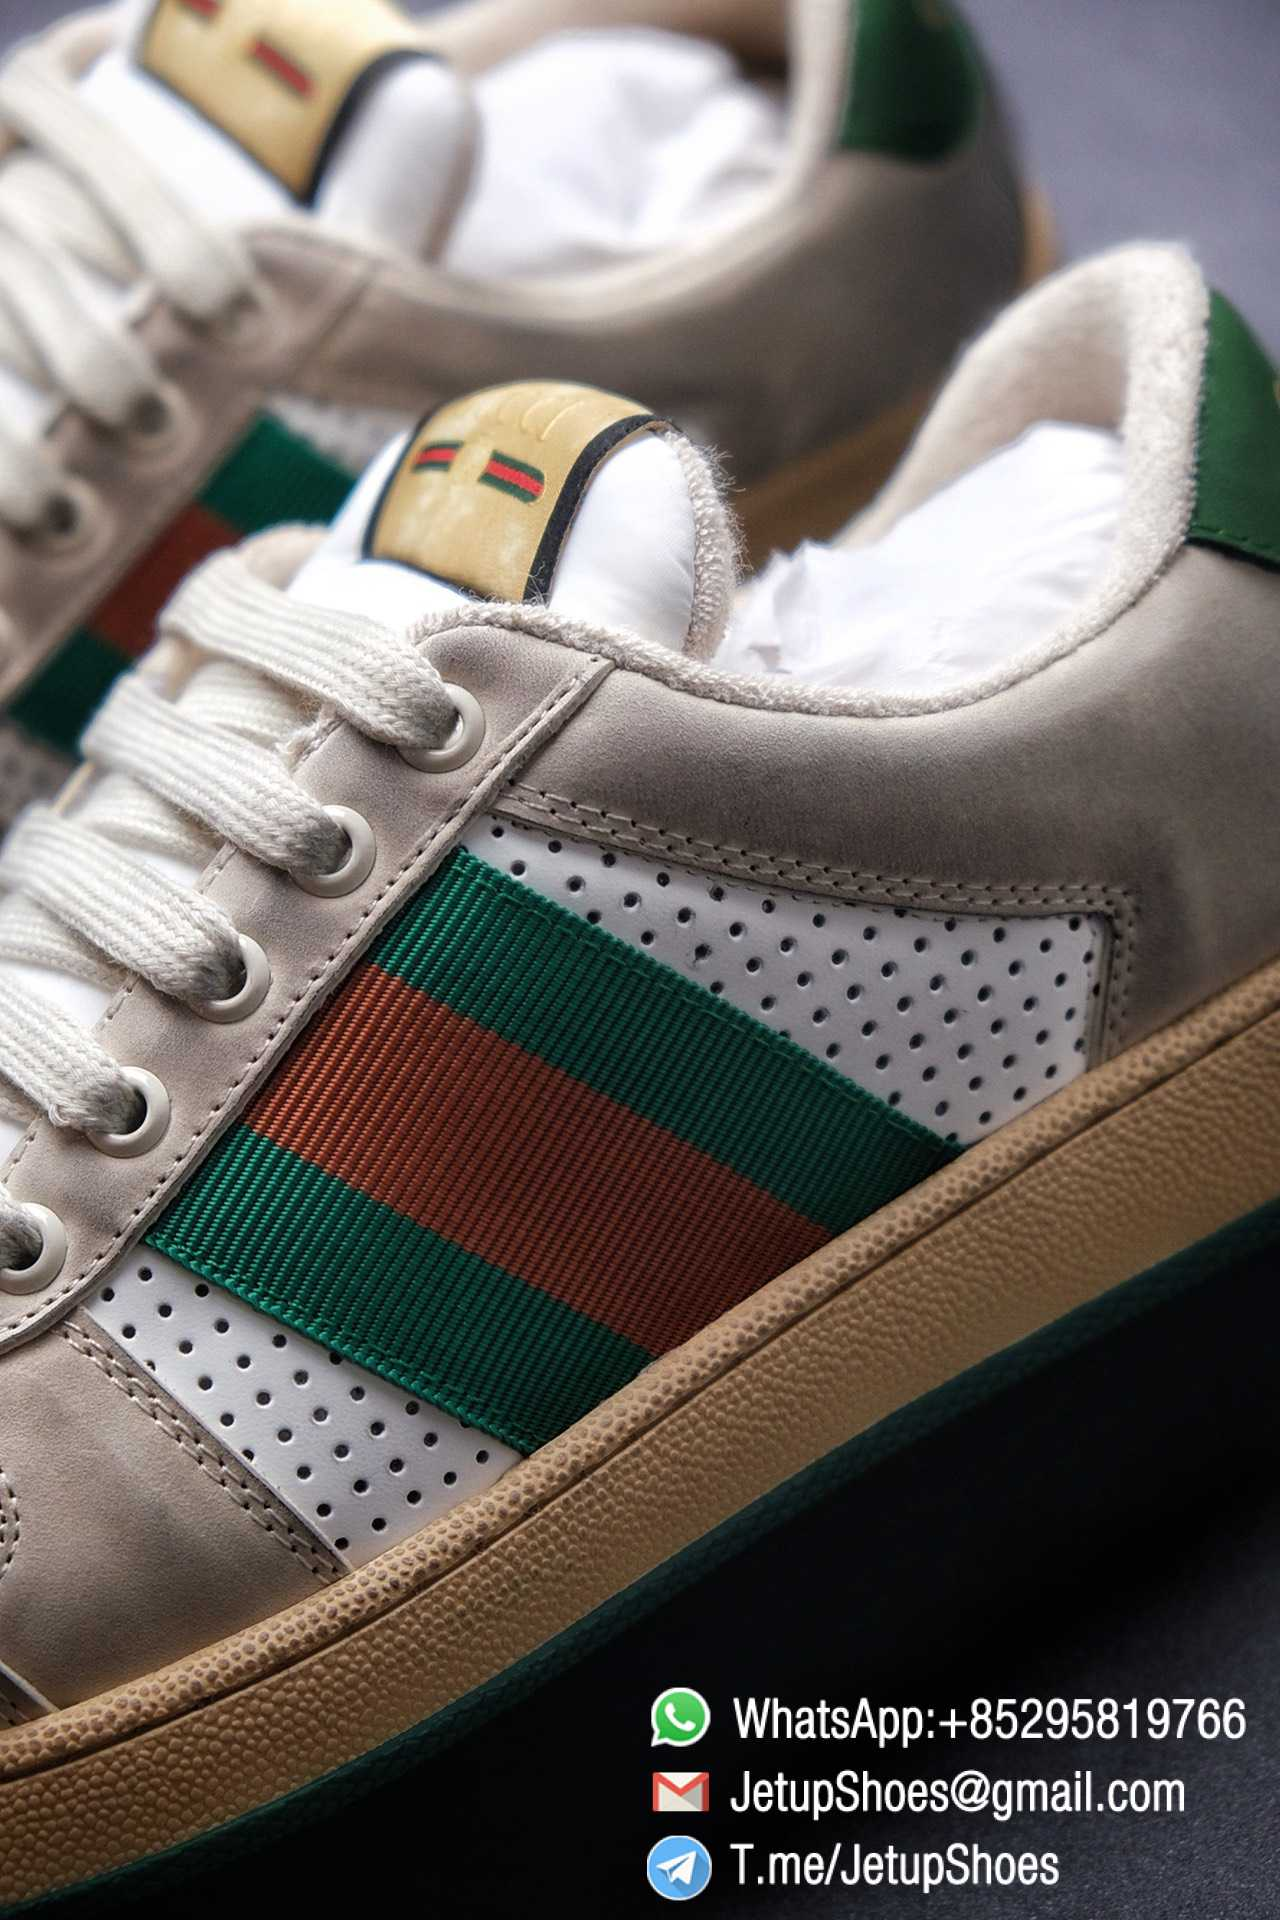 Gucci,Screener Leather Sneaker,Low-Top,Screener Leather Sneaker Low-Top Sneaker,Gucci Vintage Green and Orange Effect Sneakers